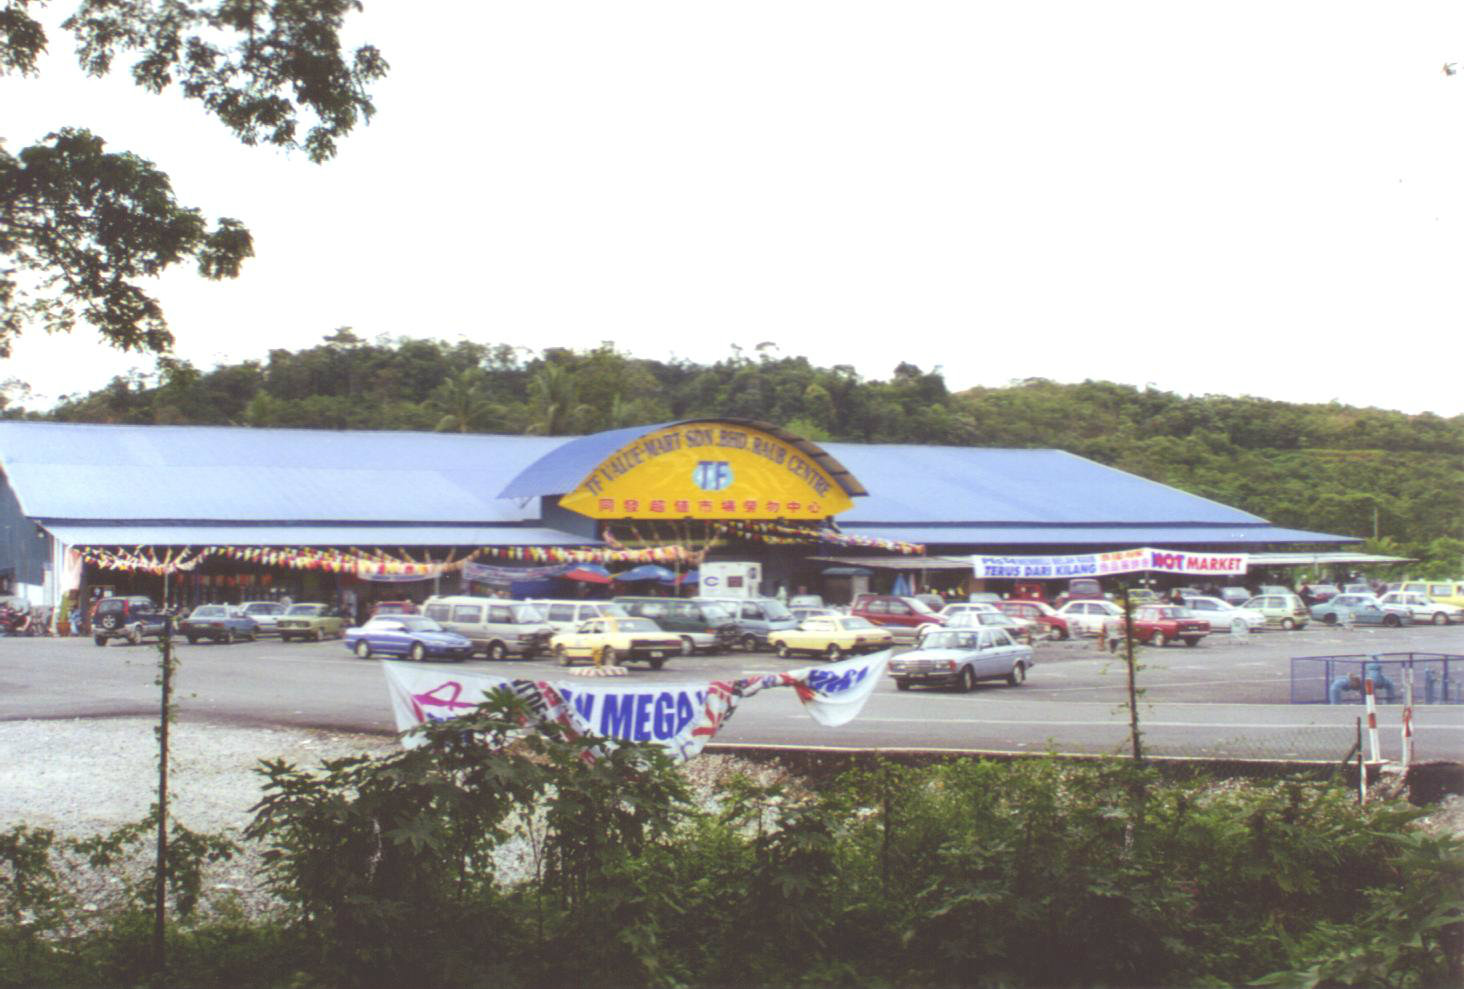 General View to TF Value Mart at Raub, Pahang